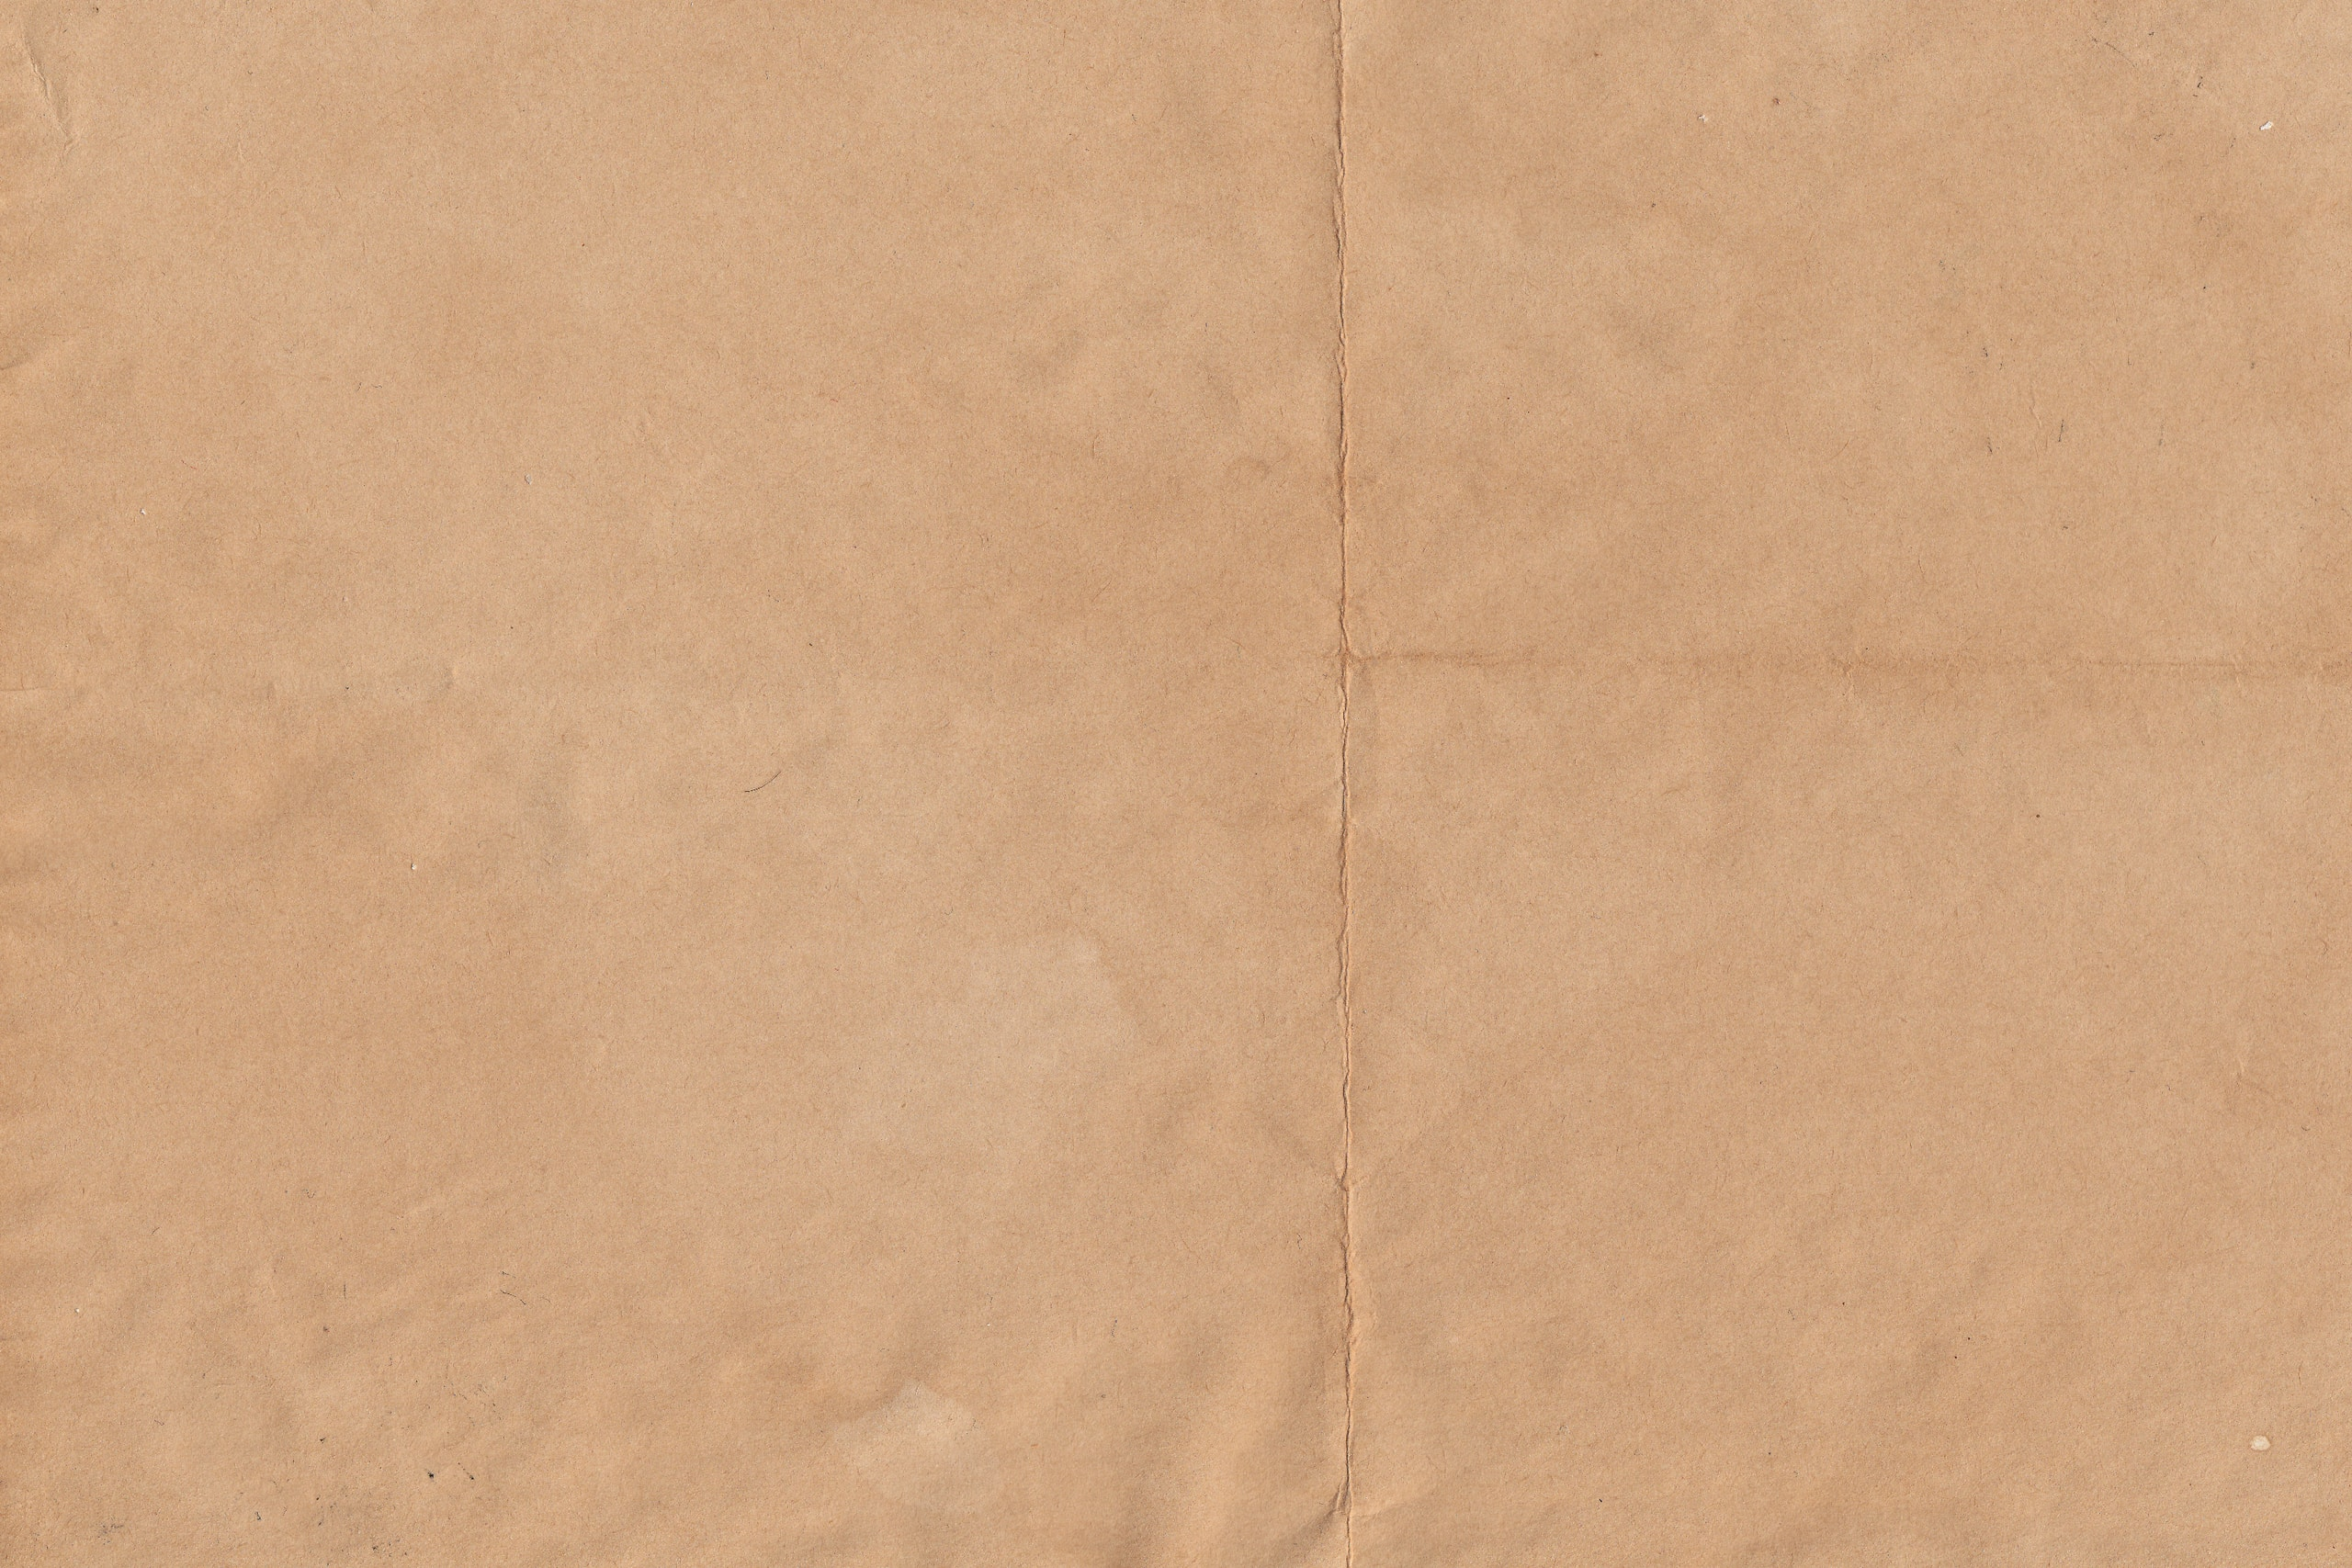 """This texture is part of the set """"Coffee&Paper"""", you can check full package here: https://bit.ly/36EVP3Y"""